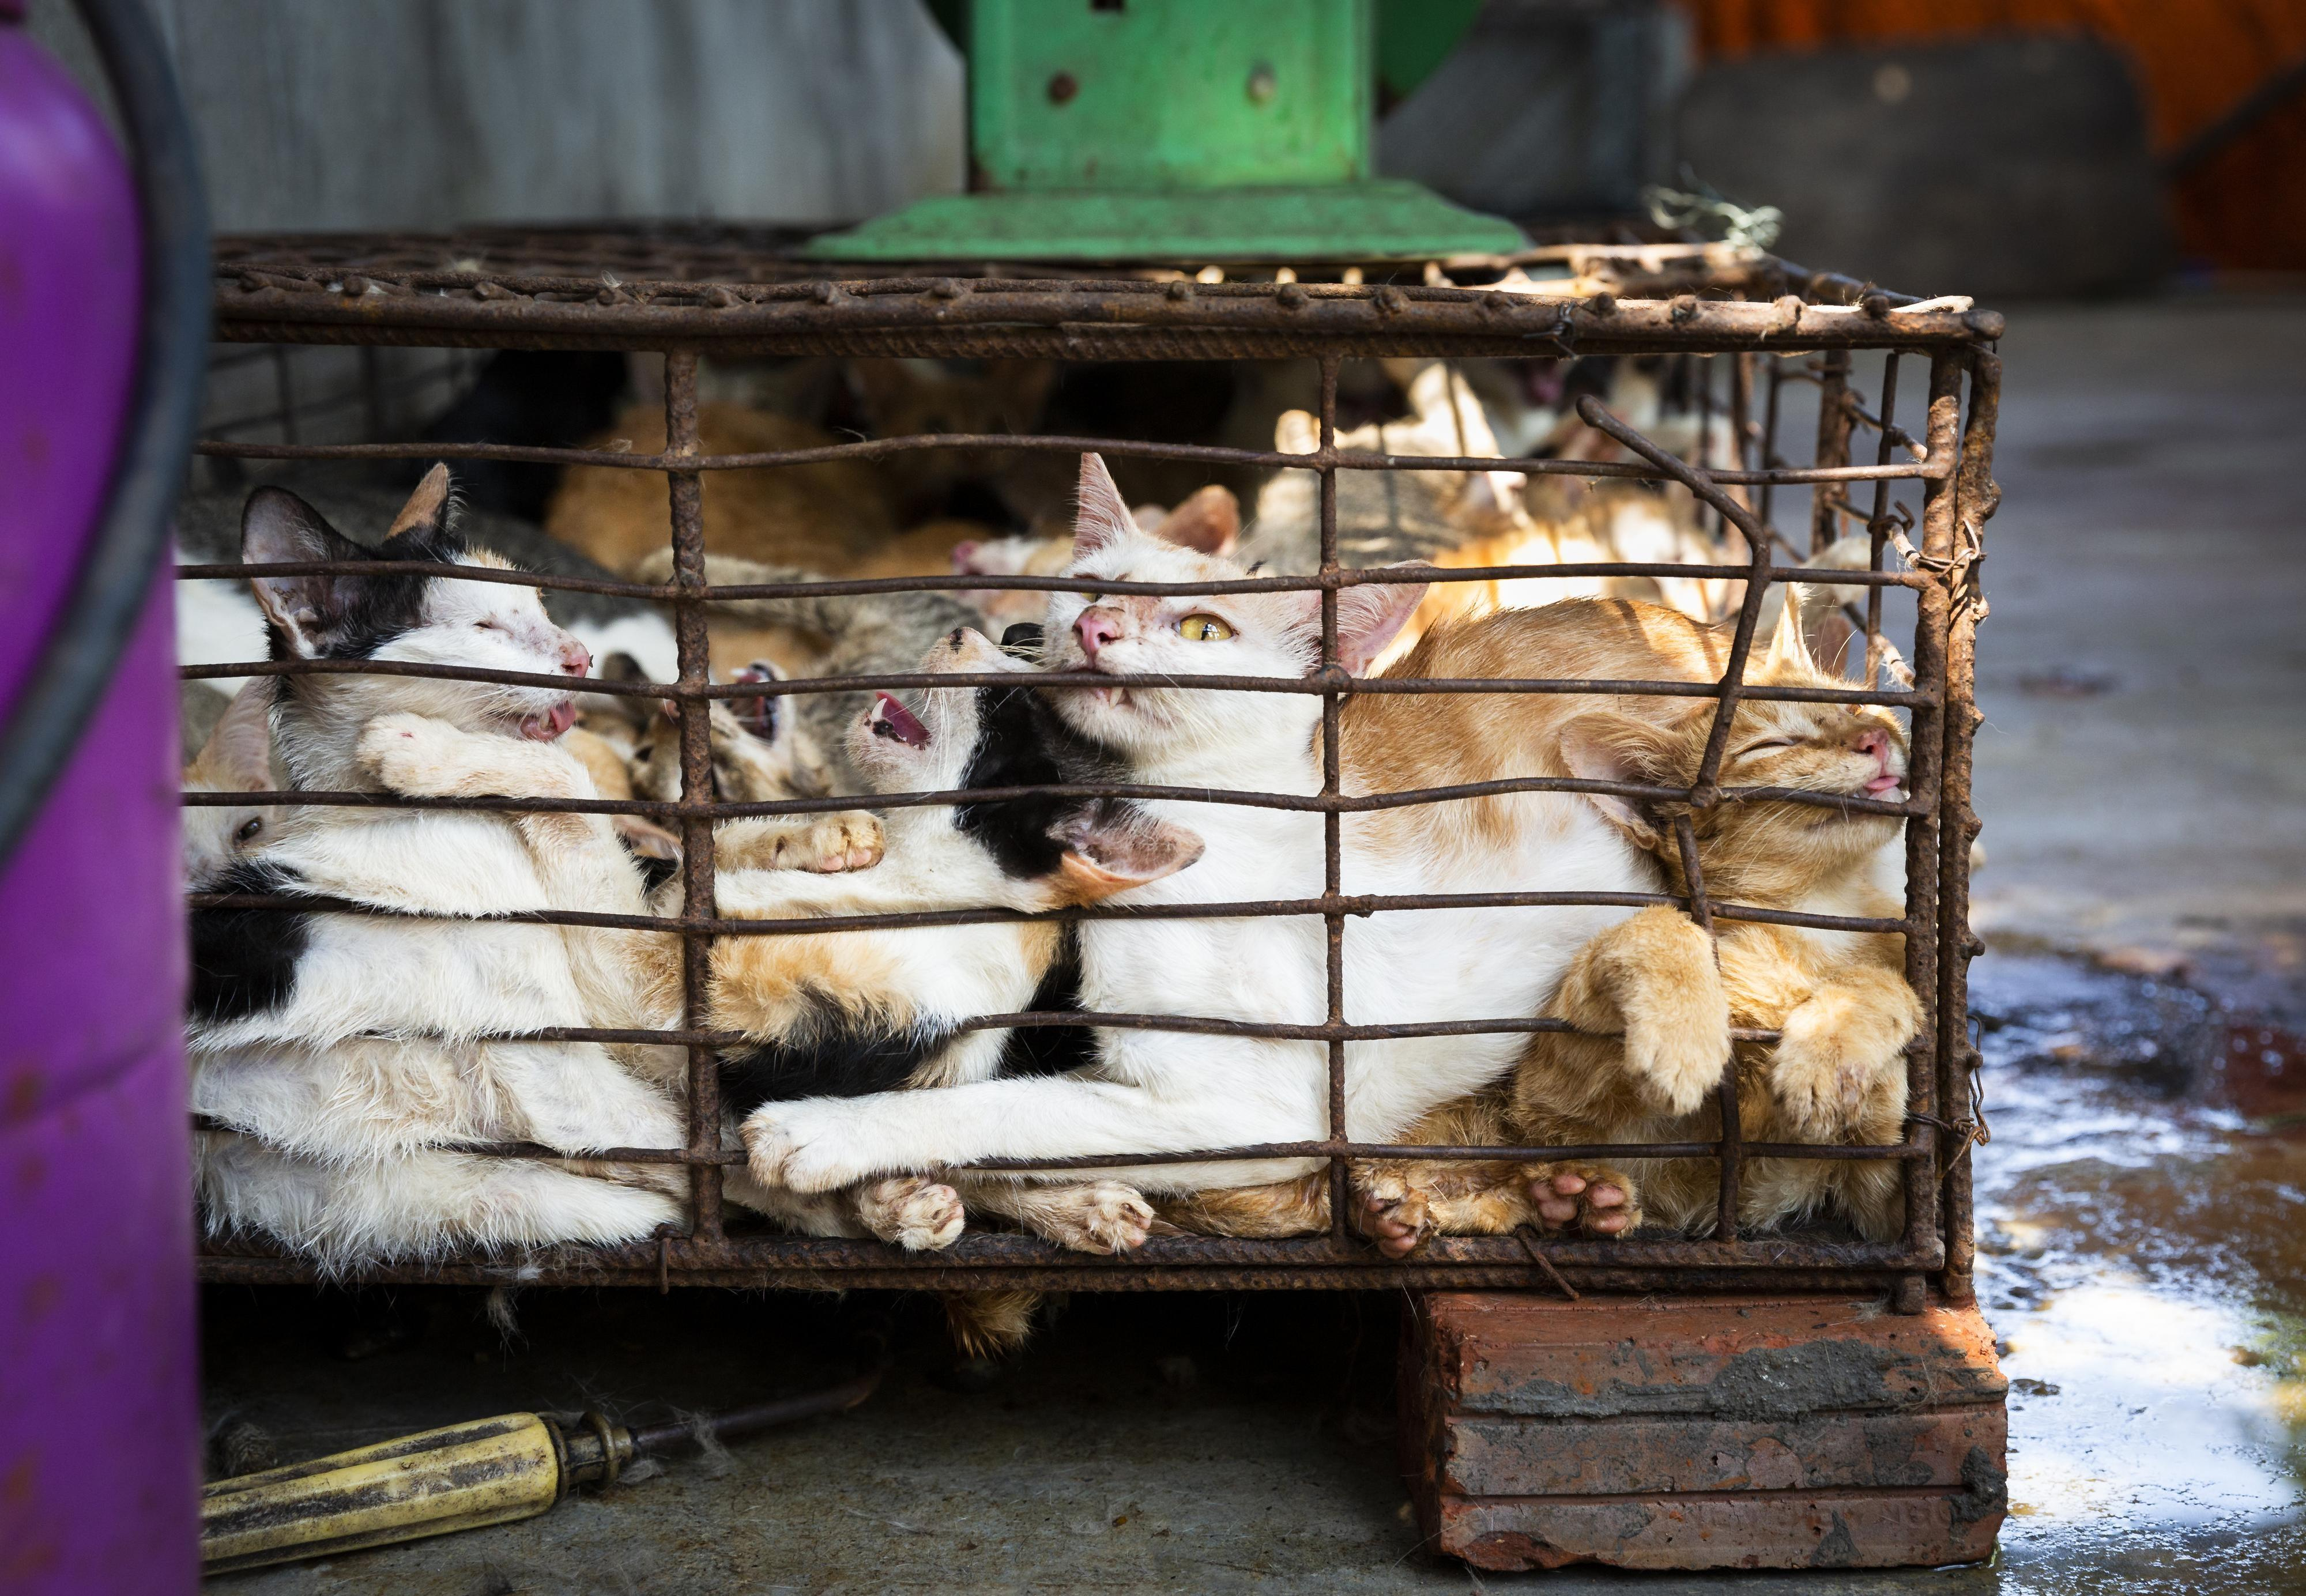 The cat meat trade in Vietnam